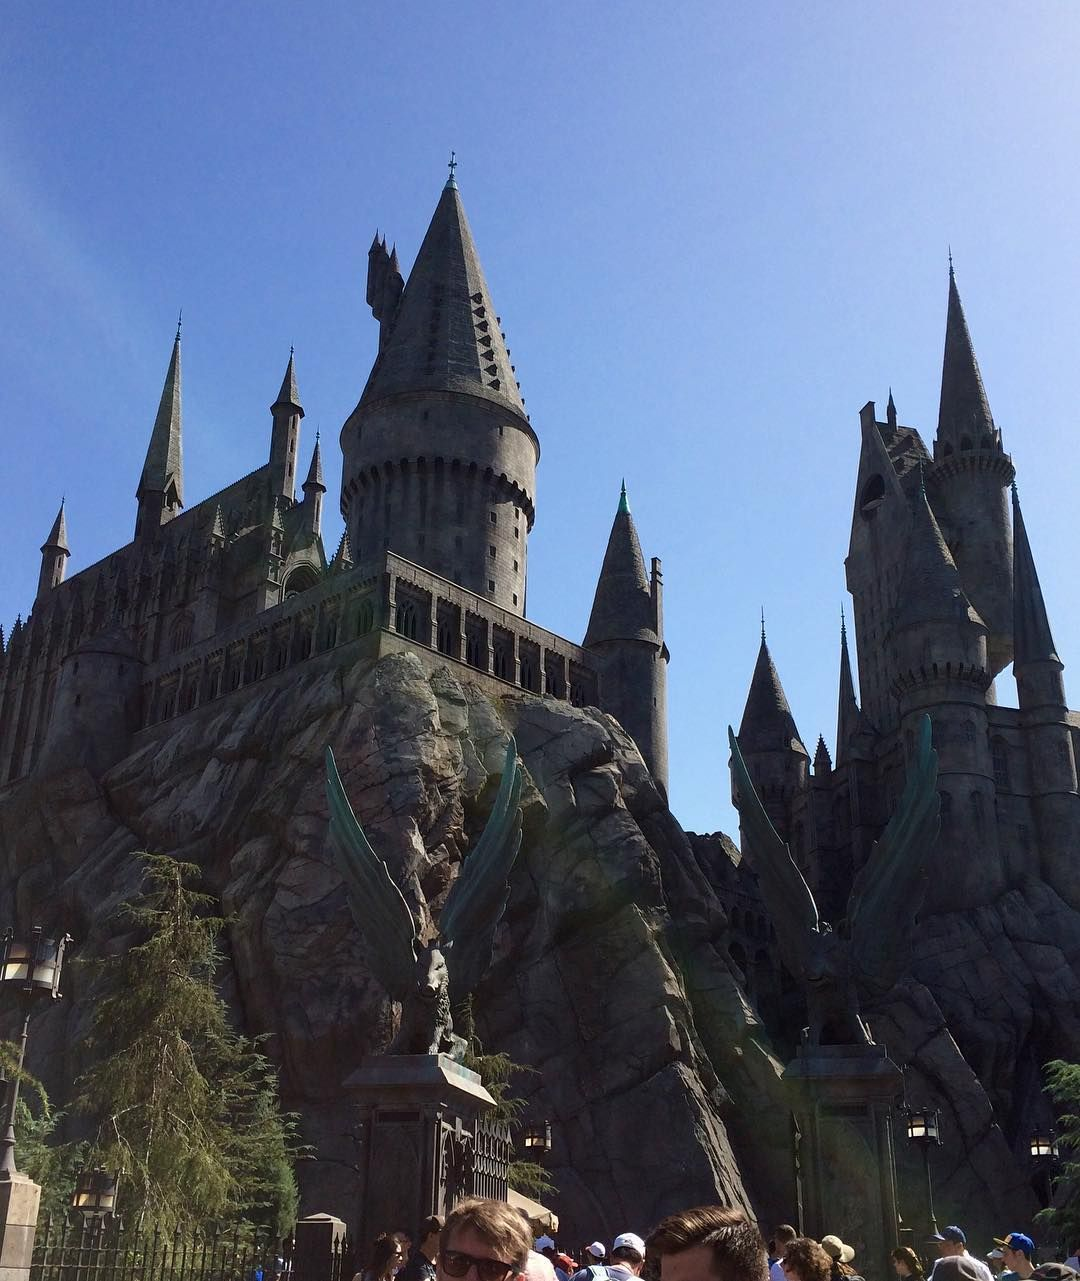 Wizarding World Of Harry Potter To Open Next April In California Wizarding World Of Harry Potter Harry Potter Universal Studios Universal Studios Hollywood